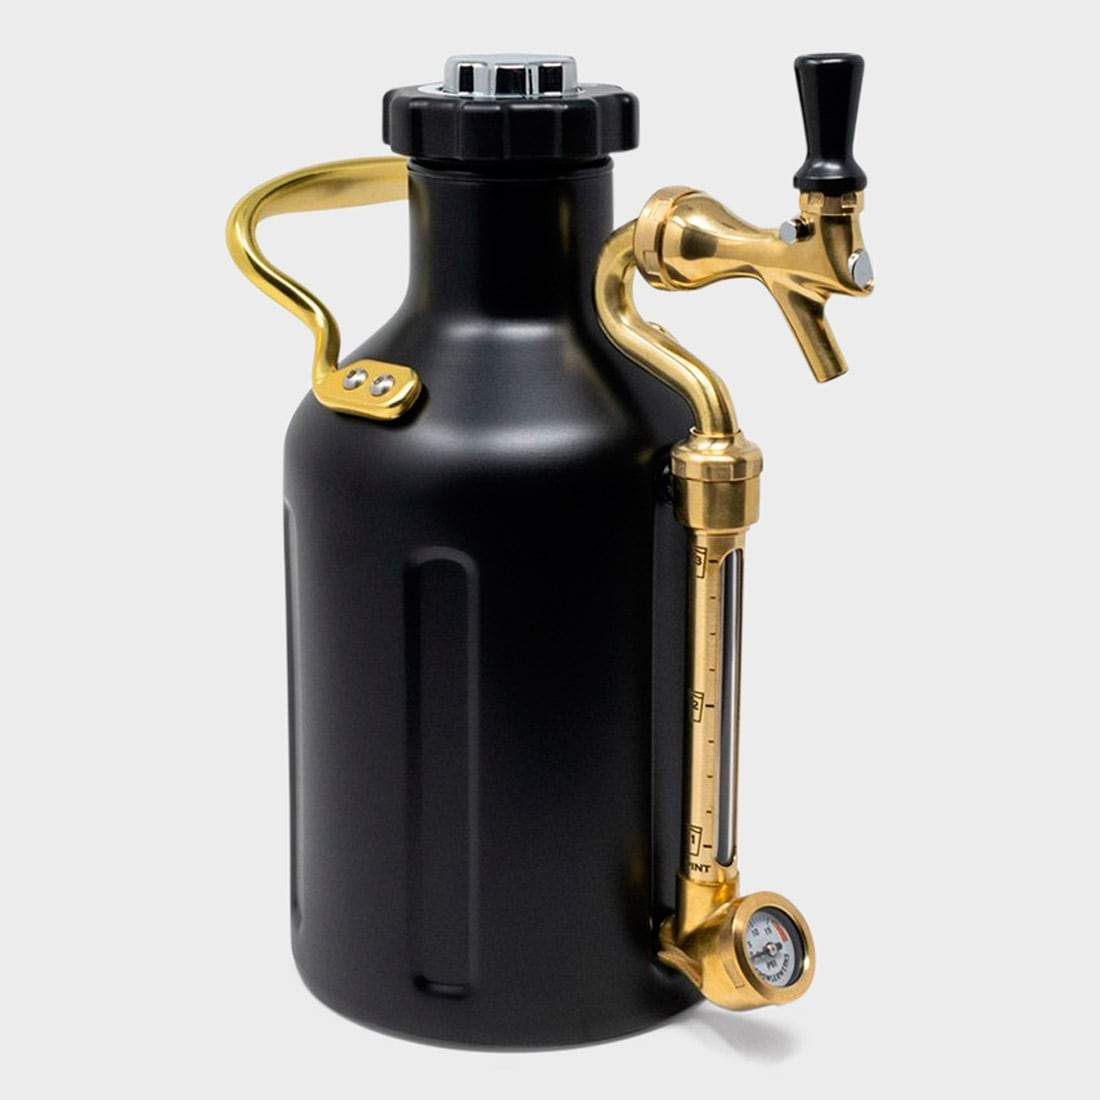 Growlerwerks Ukeg 64oz Black Matte